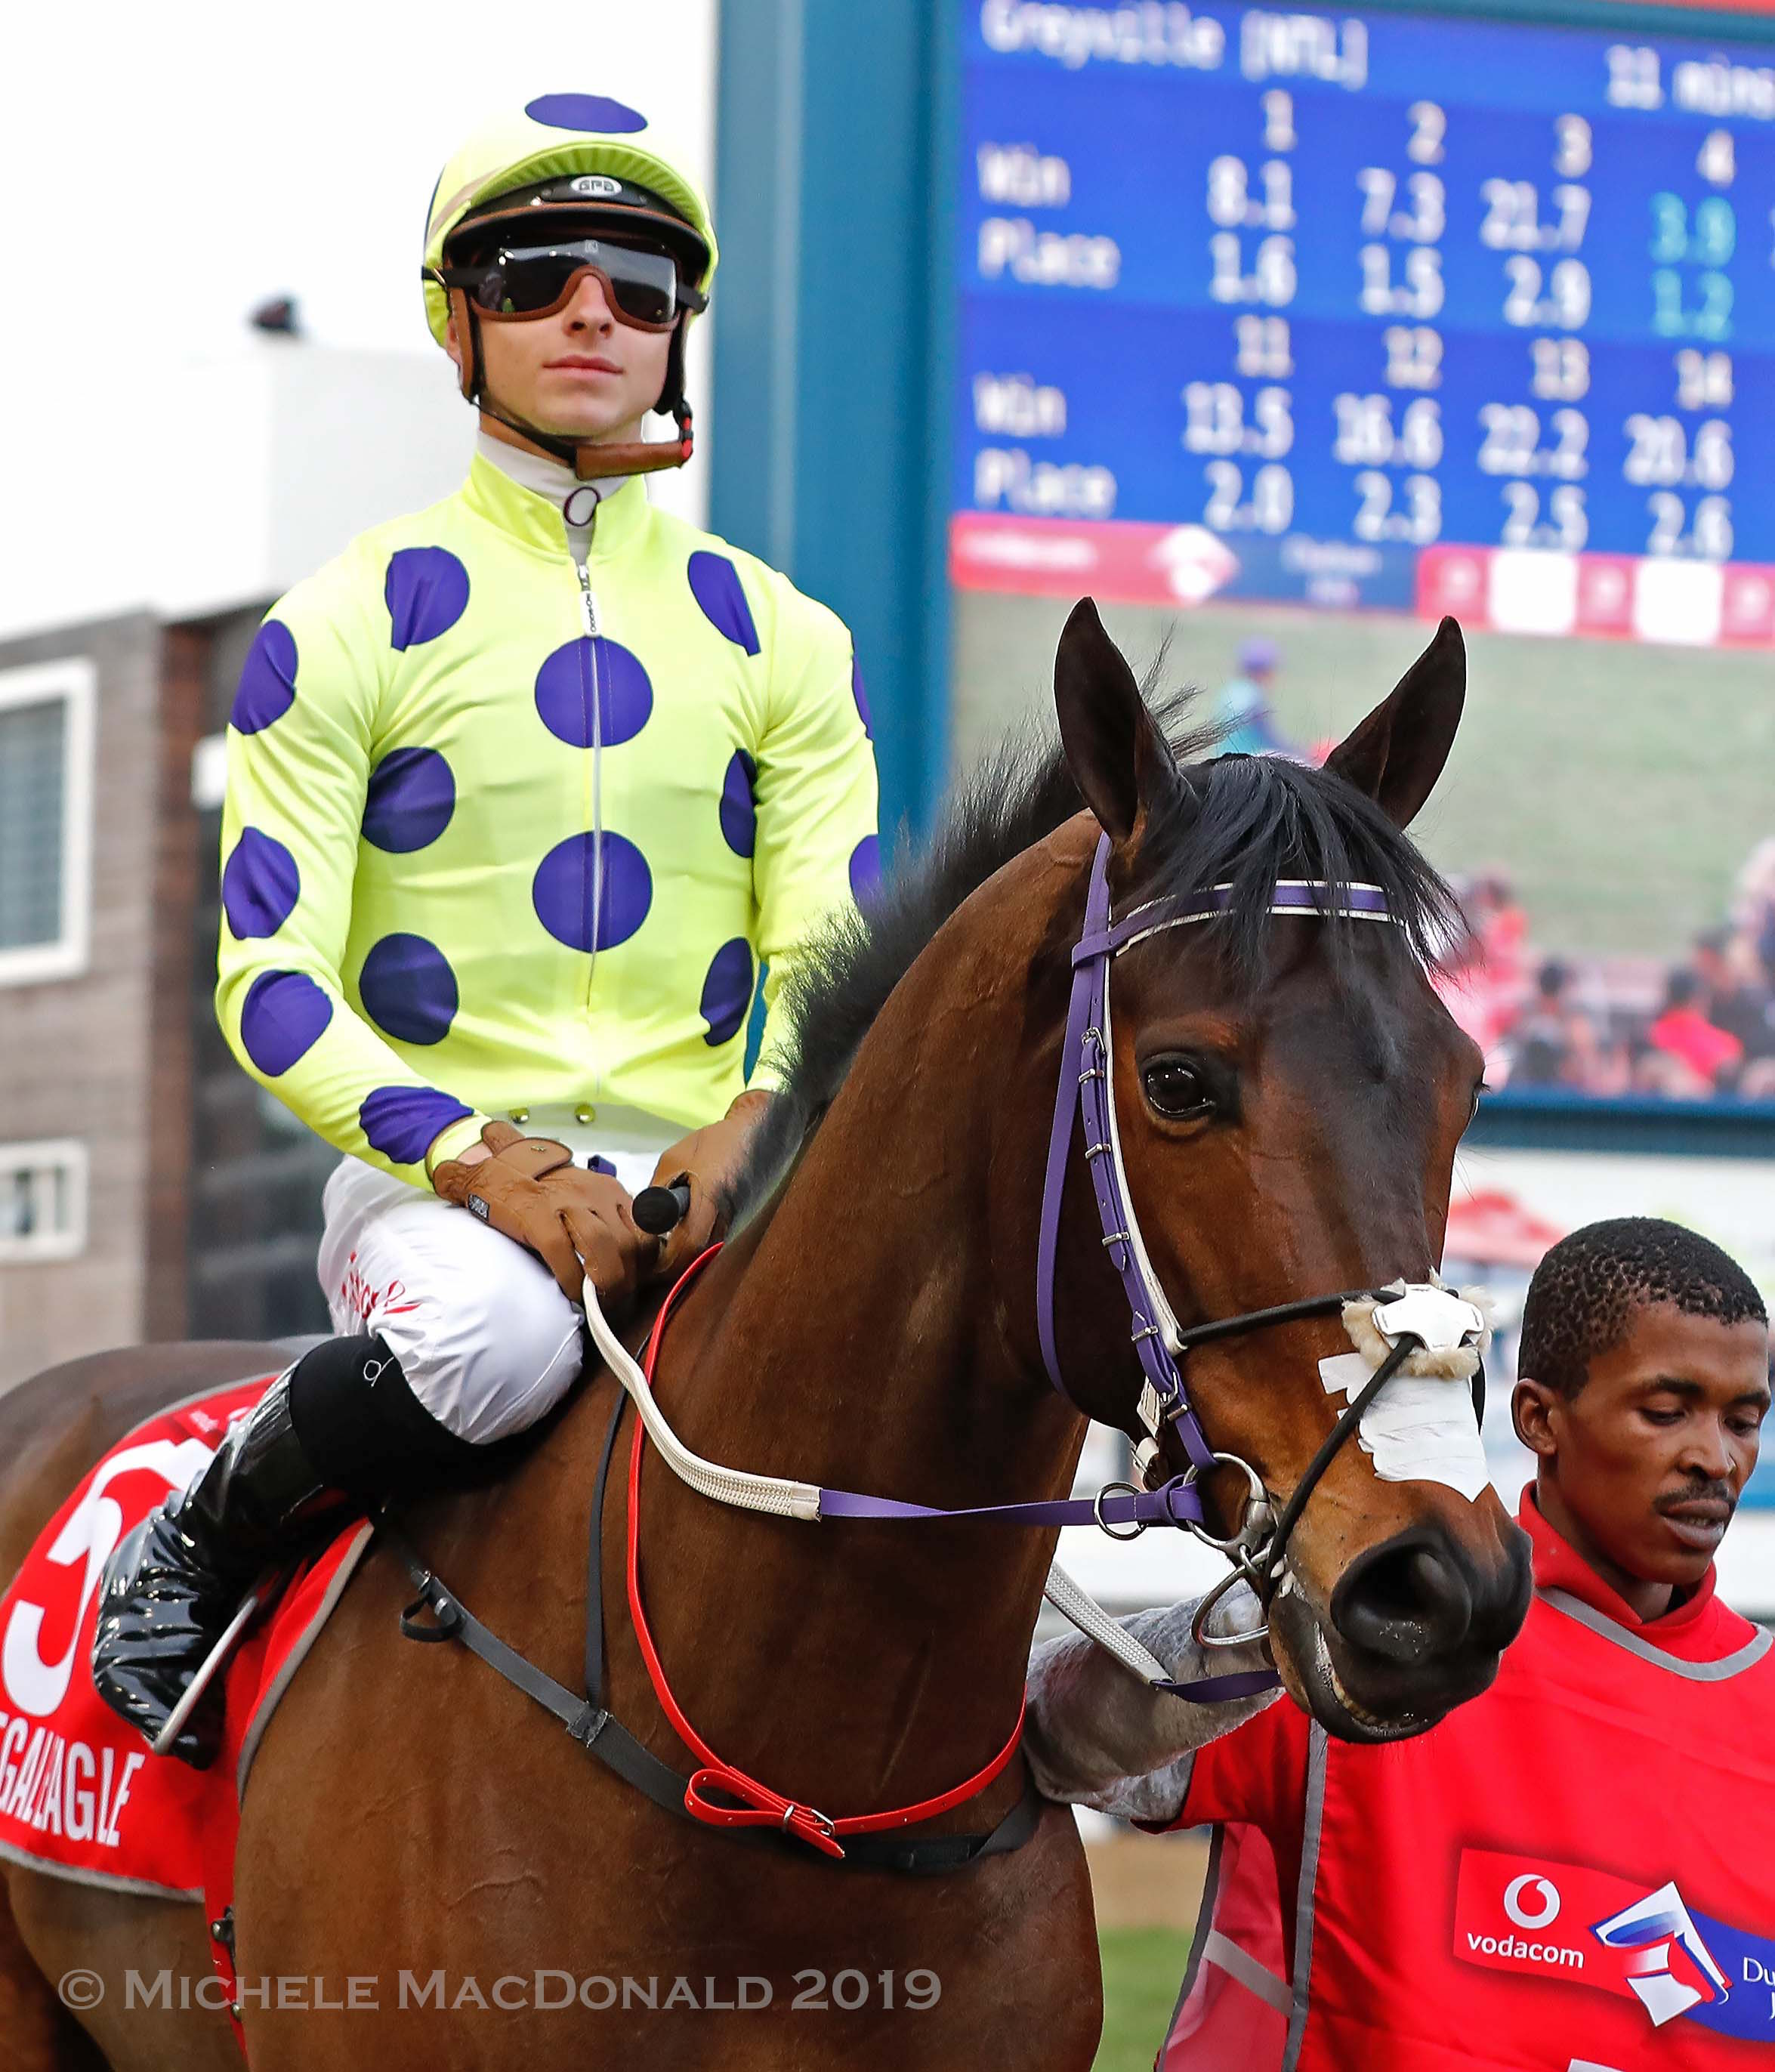 Date with a legend: Lyle Hewitson in the Durban July post parade on the Sean Tarry-trained Legal Eagle, two-time South African Horse of the Year and eight-time G1 winner. Photo: Michele MacDonald